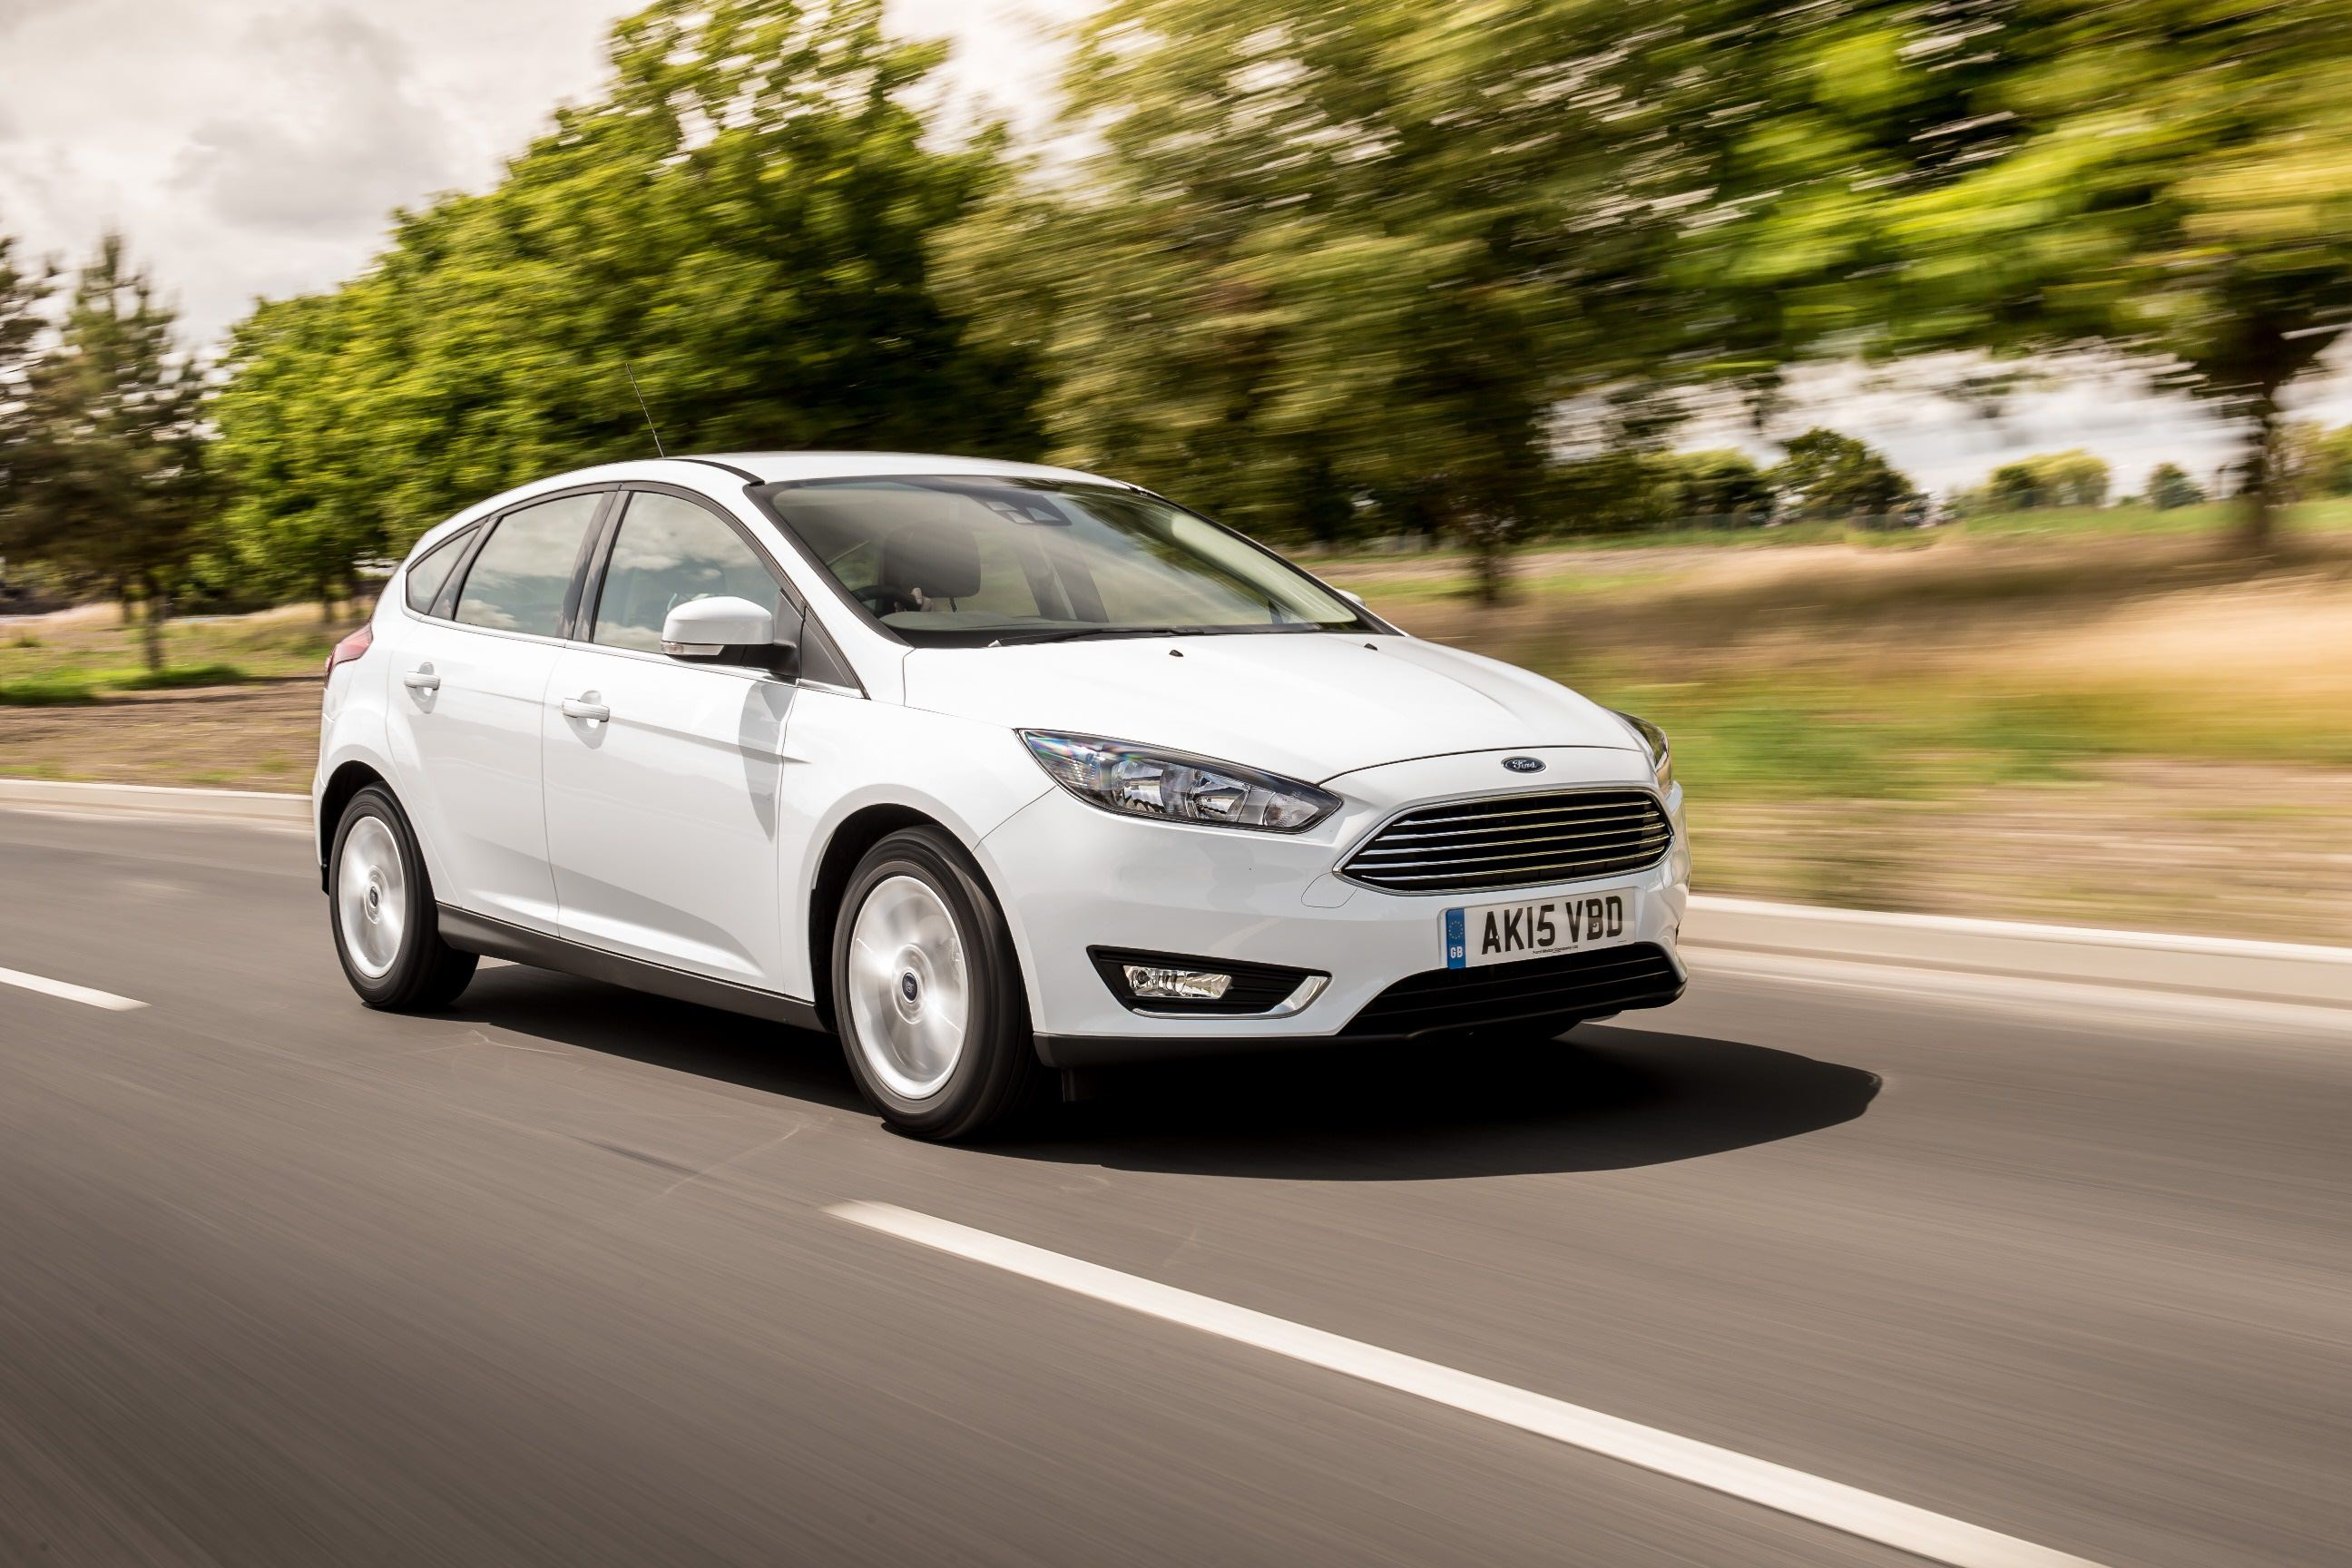 Used Ford Focus Buying Guide - White Ford Focus